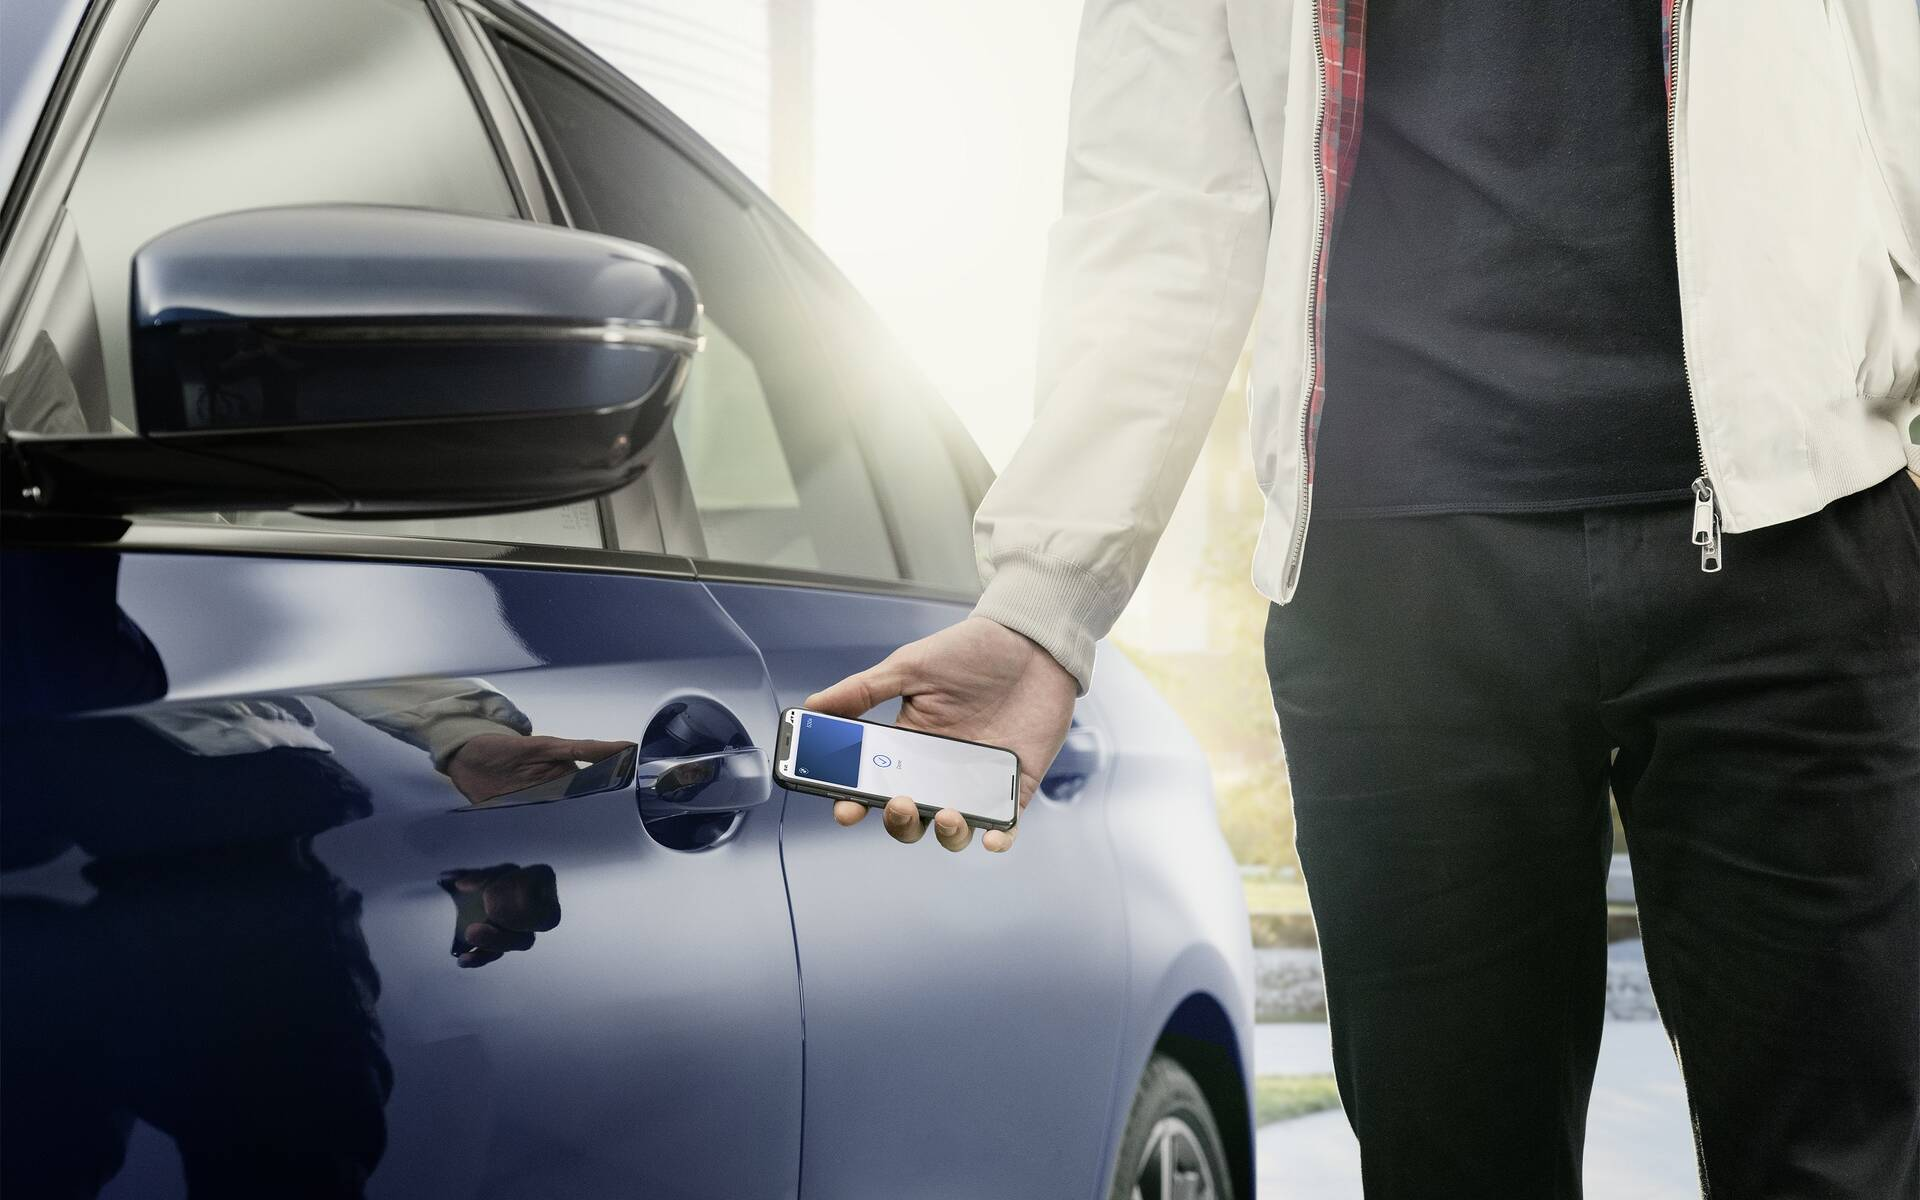 Apple Announces CarKey for iPhone, Minor CarPlay Update - The Car Guide